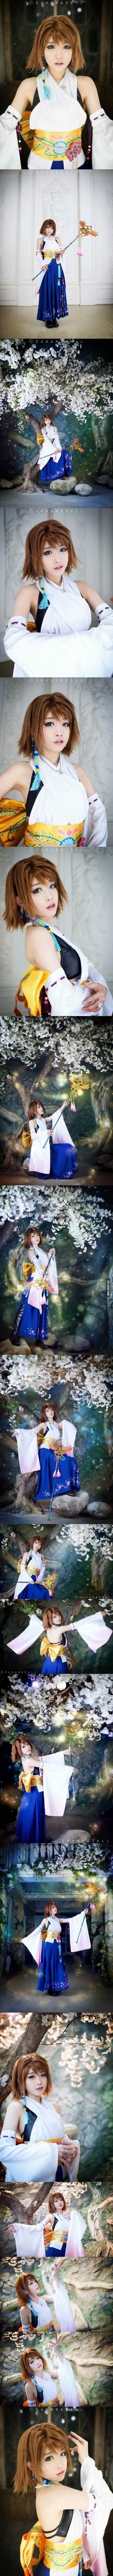 Final Fantasy X - Yuna Cosplay - Tomia #cosplay Just awesome !!!!!